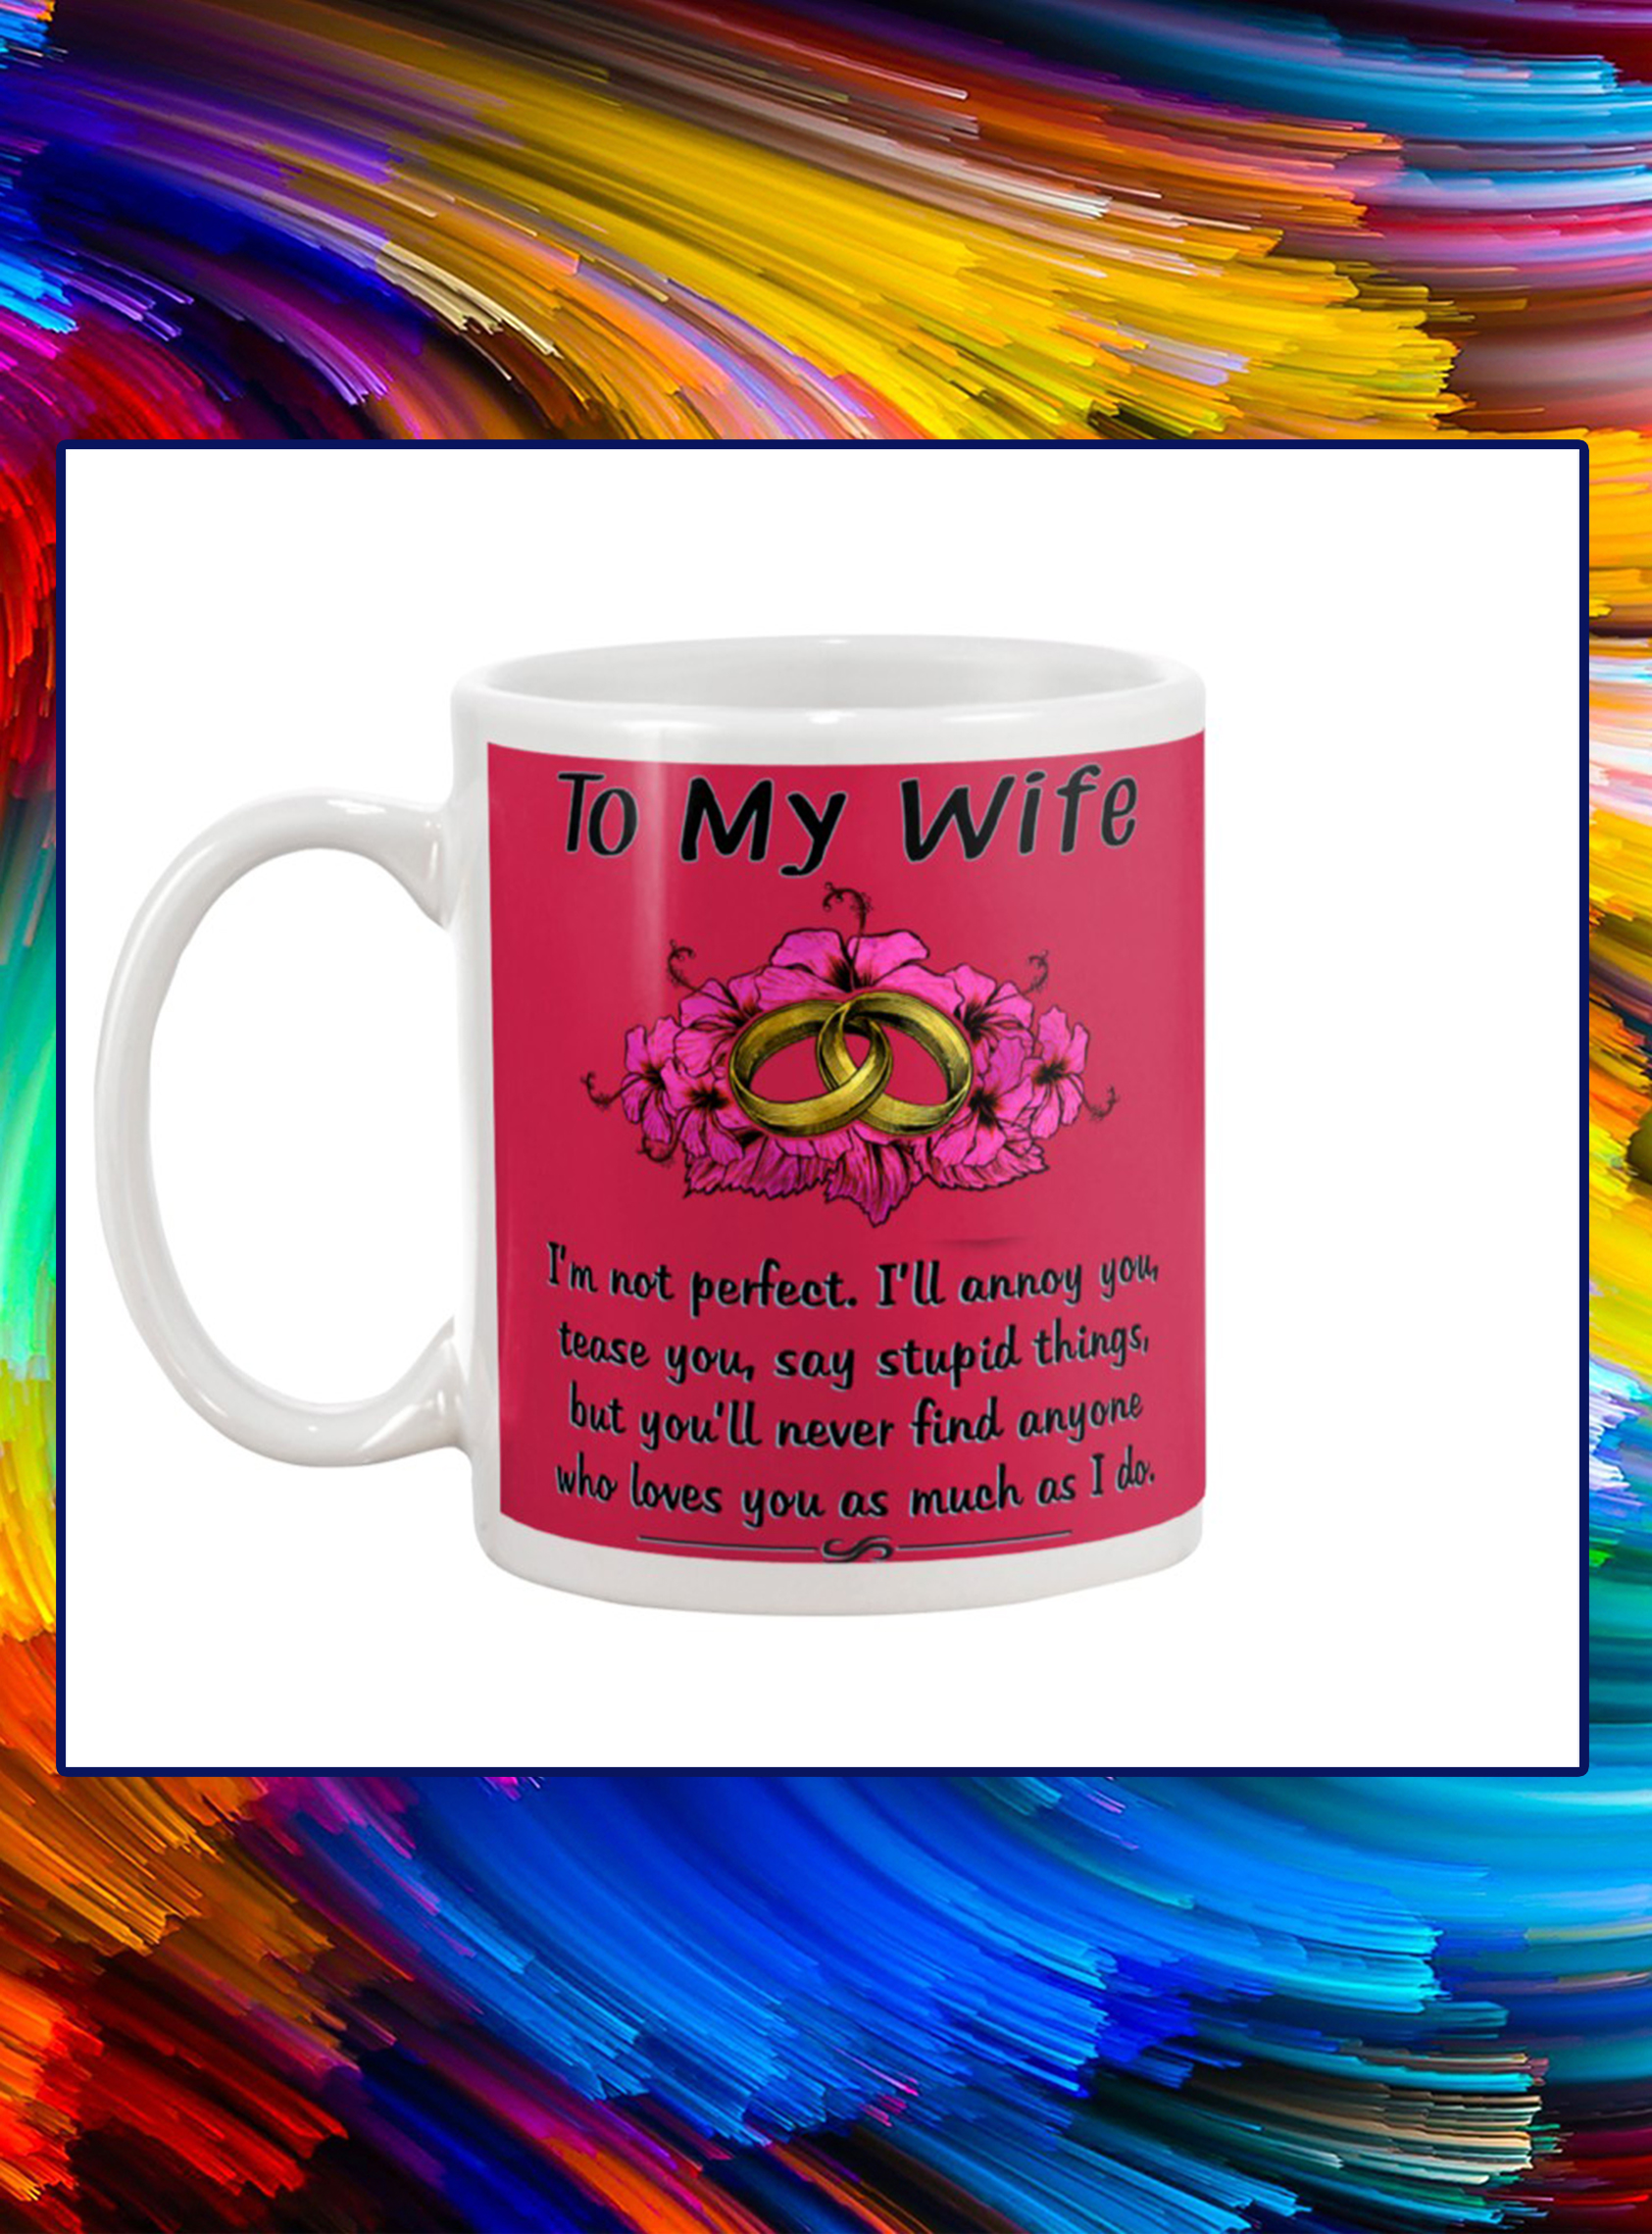 Ring to my wife i'm not perfect mug- red